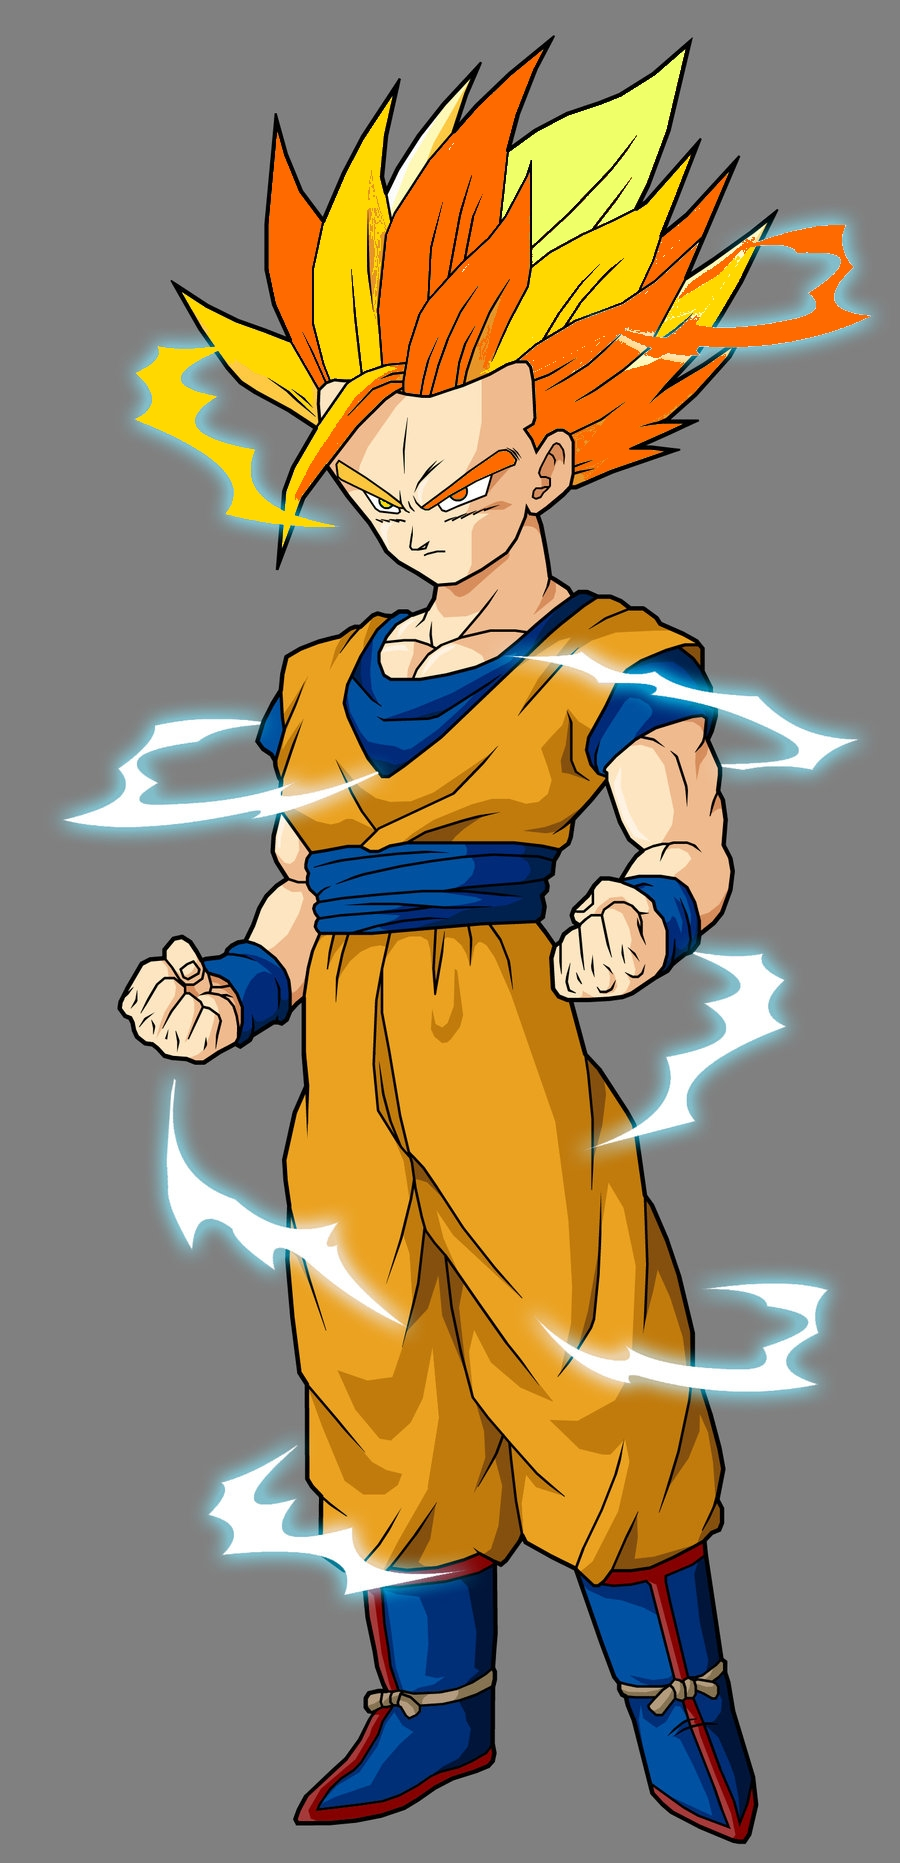 Image - Ultimate Super Saiyan 2 Gohan.jpg - Ultra Dragon Ball Wiki